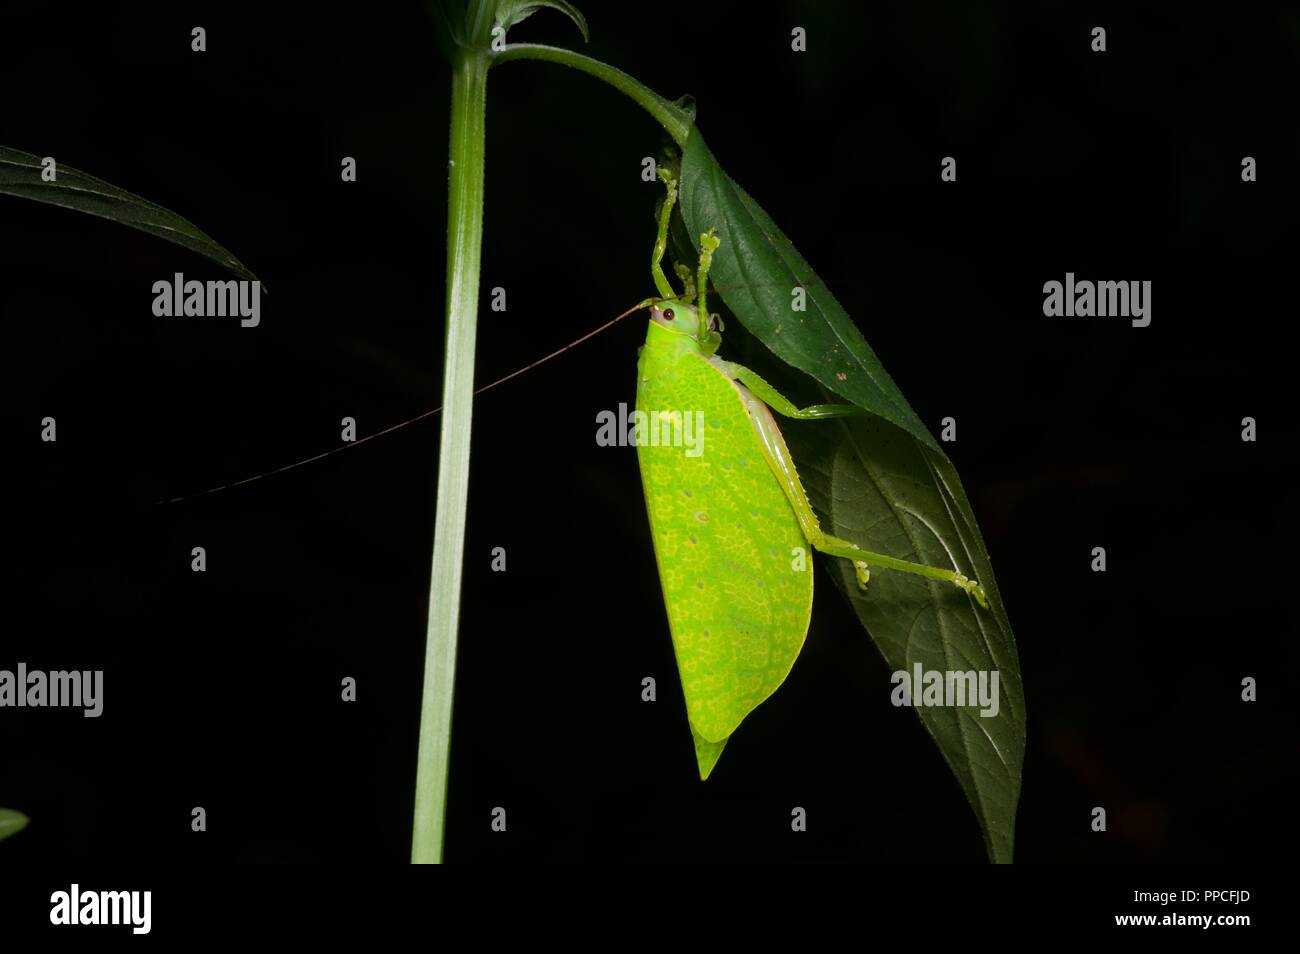 A leaf mimic katydid (family Tettigoniidae) in the rainforest foliage at night in Bobiri Forest Reserve, Ghana, West Africa - Stock Image